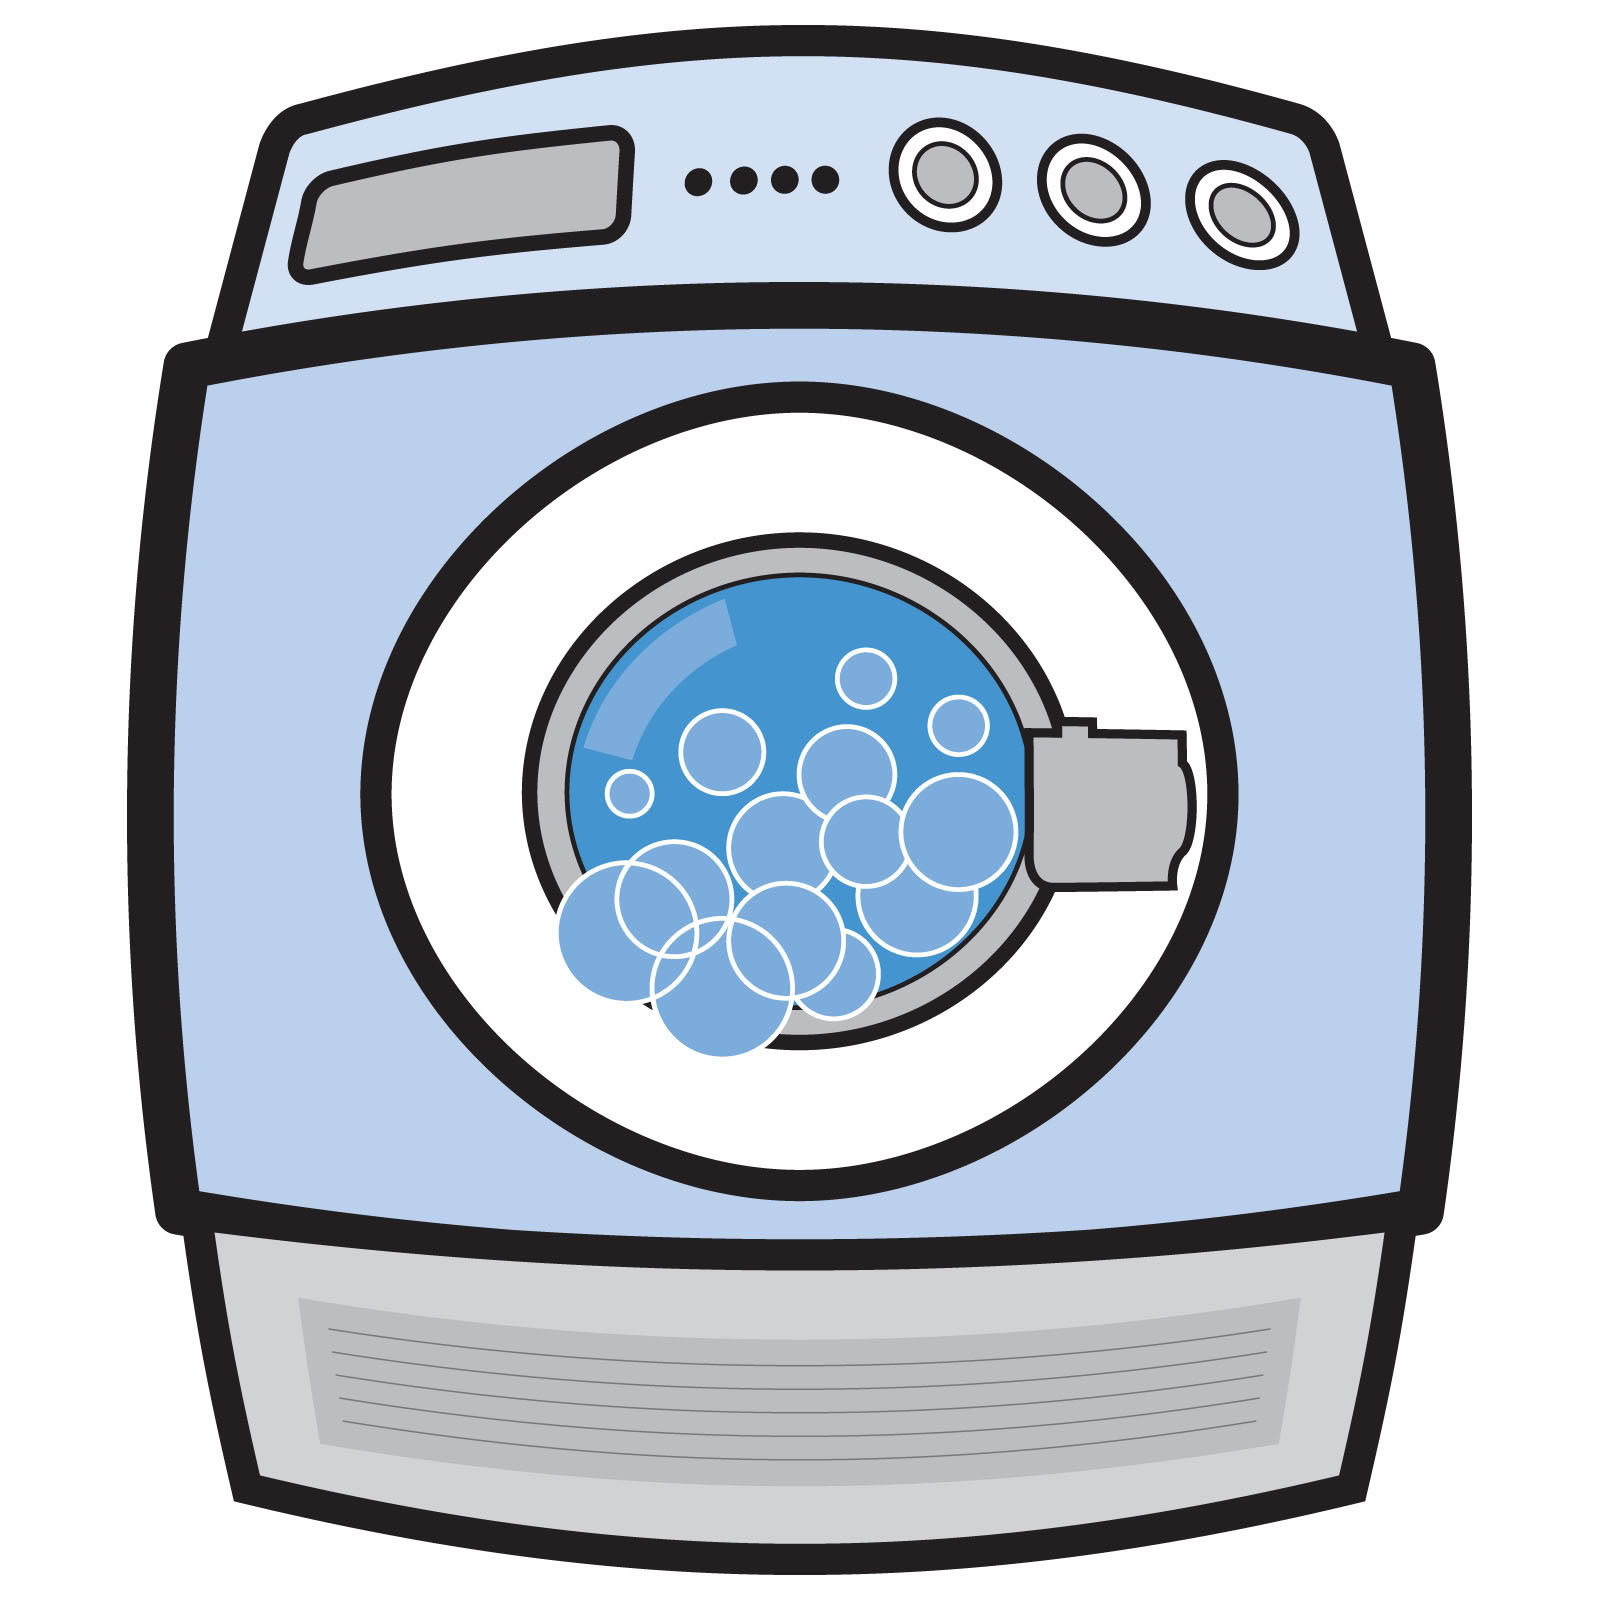 jpg transparent stock Free pictures of a. Washing machine clipart